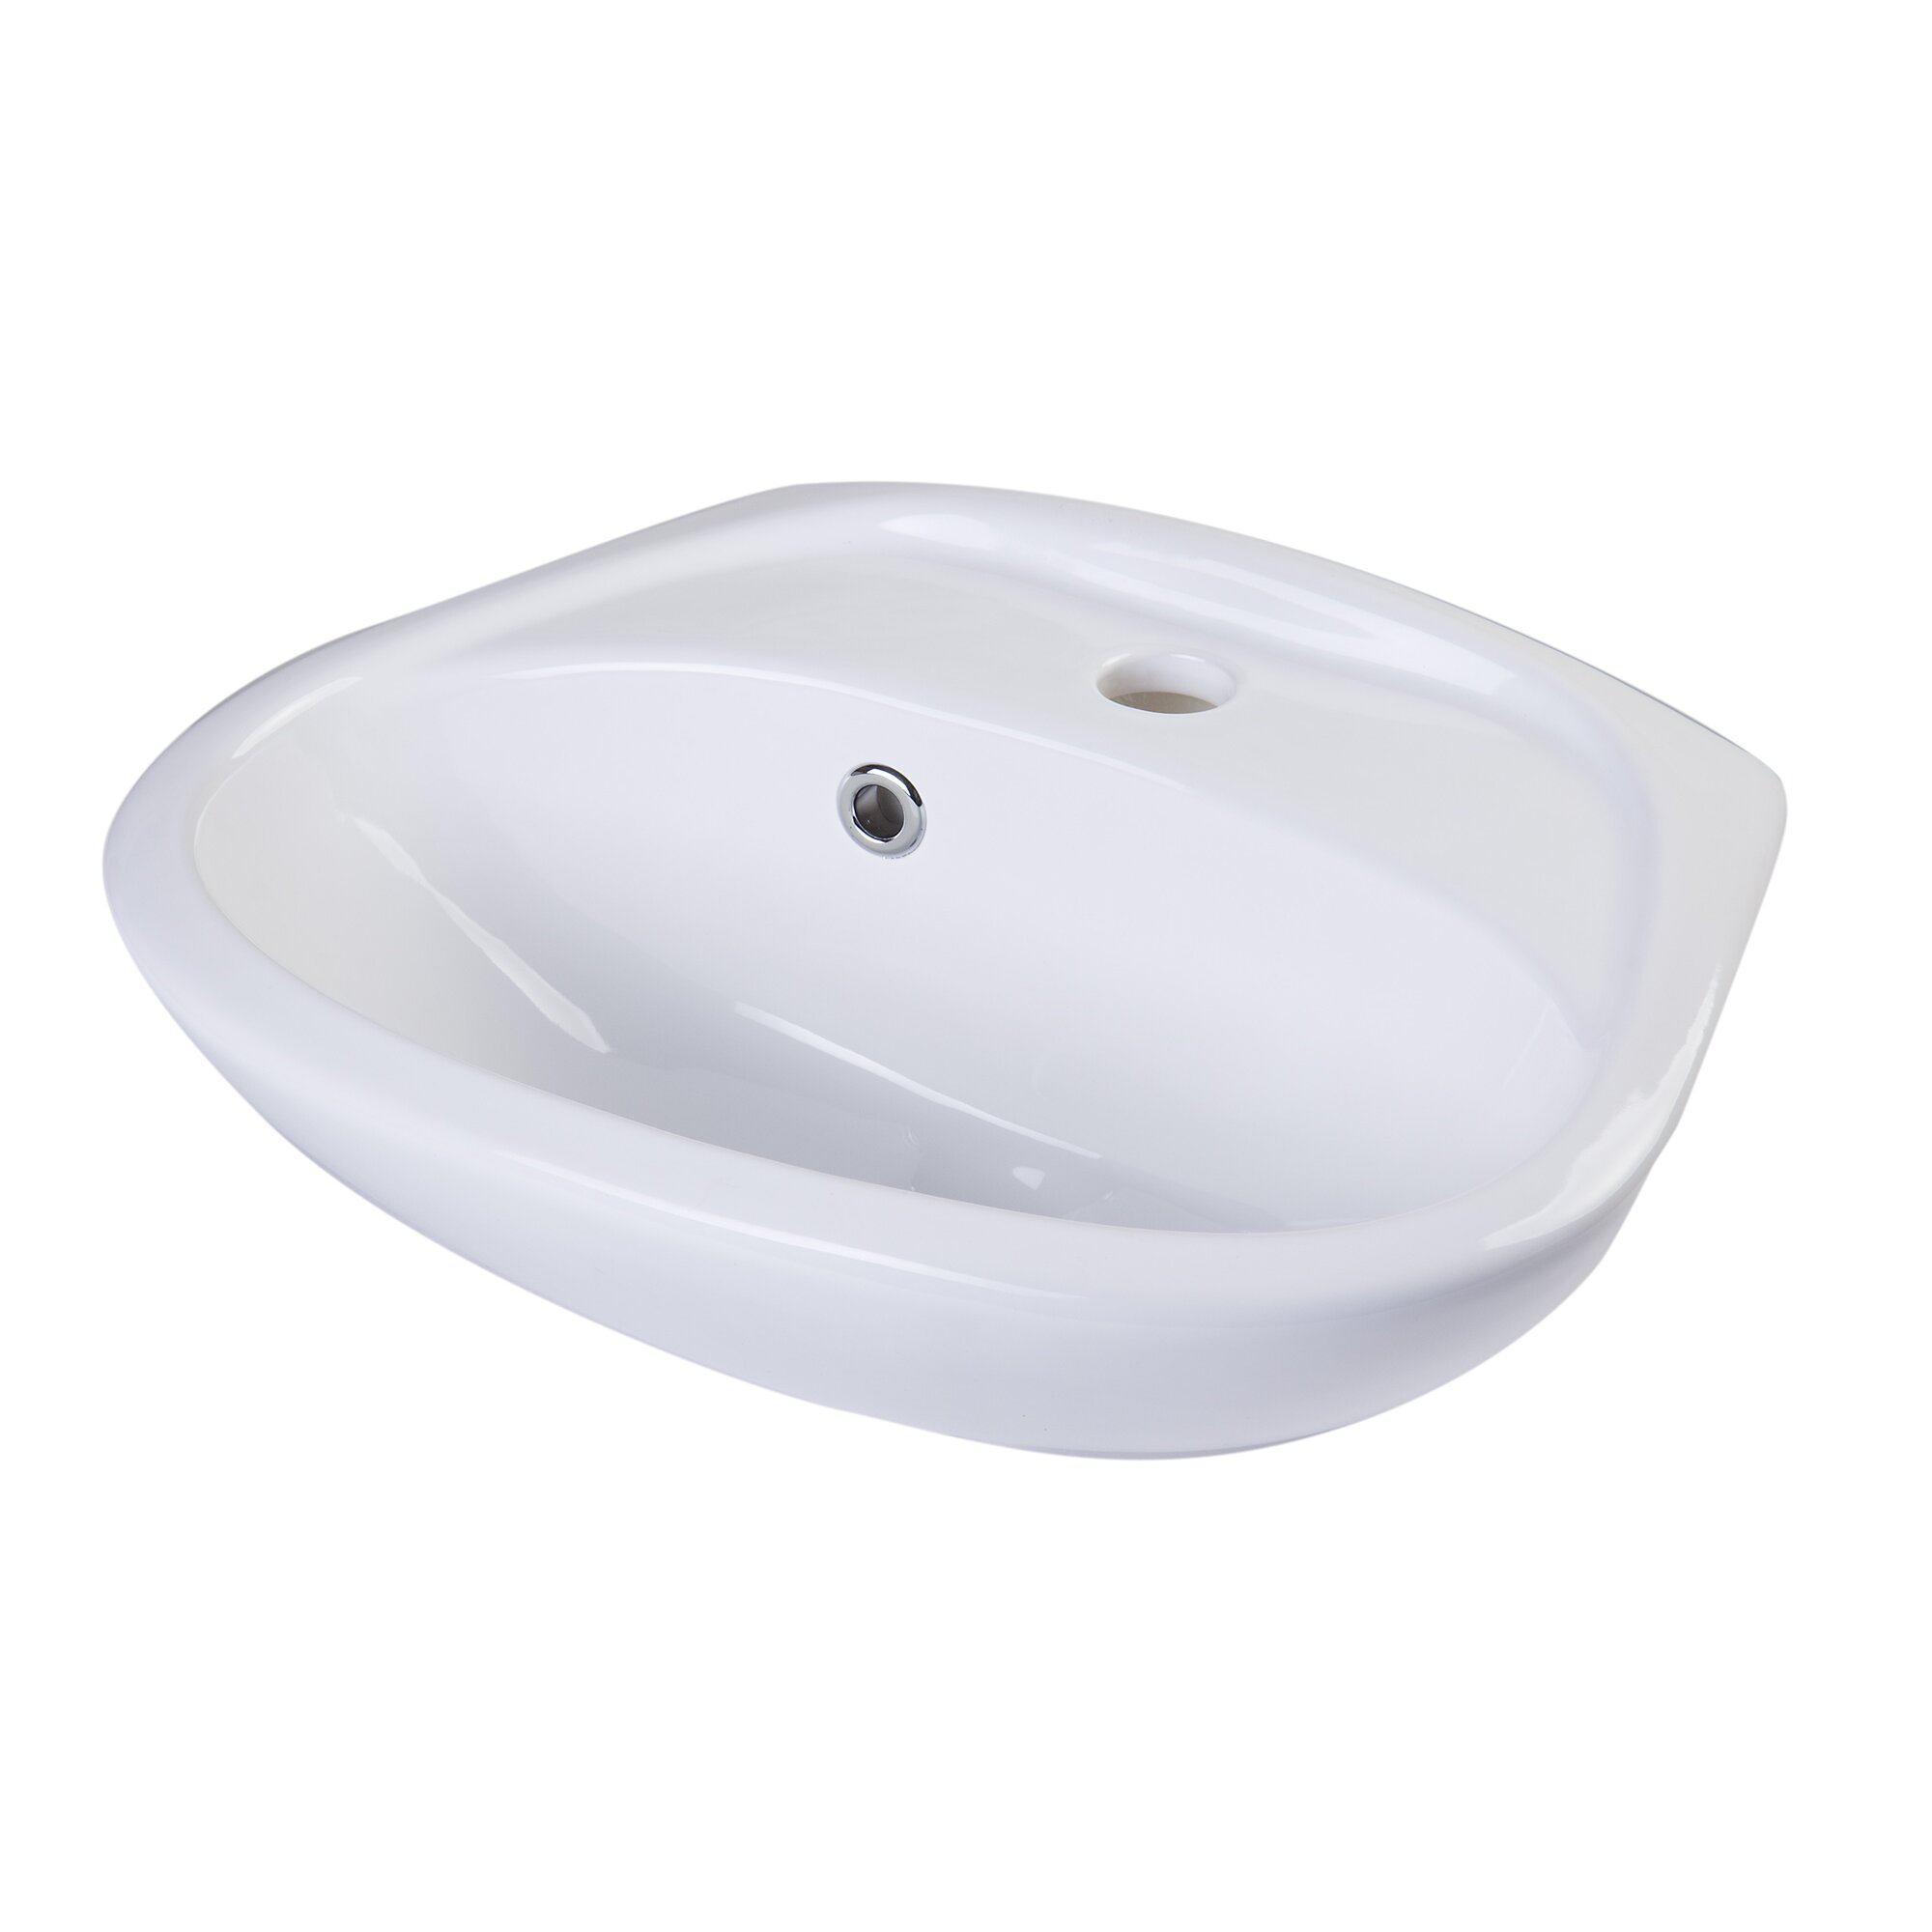 Alfi brand small wall mount bathroom sink with overflow for Small wall mounted toilet